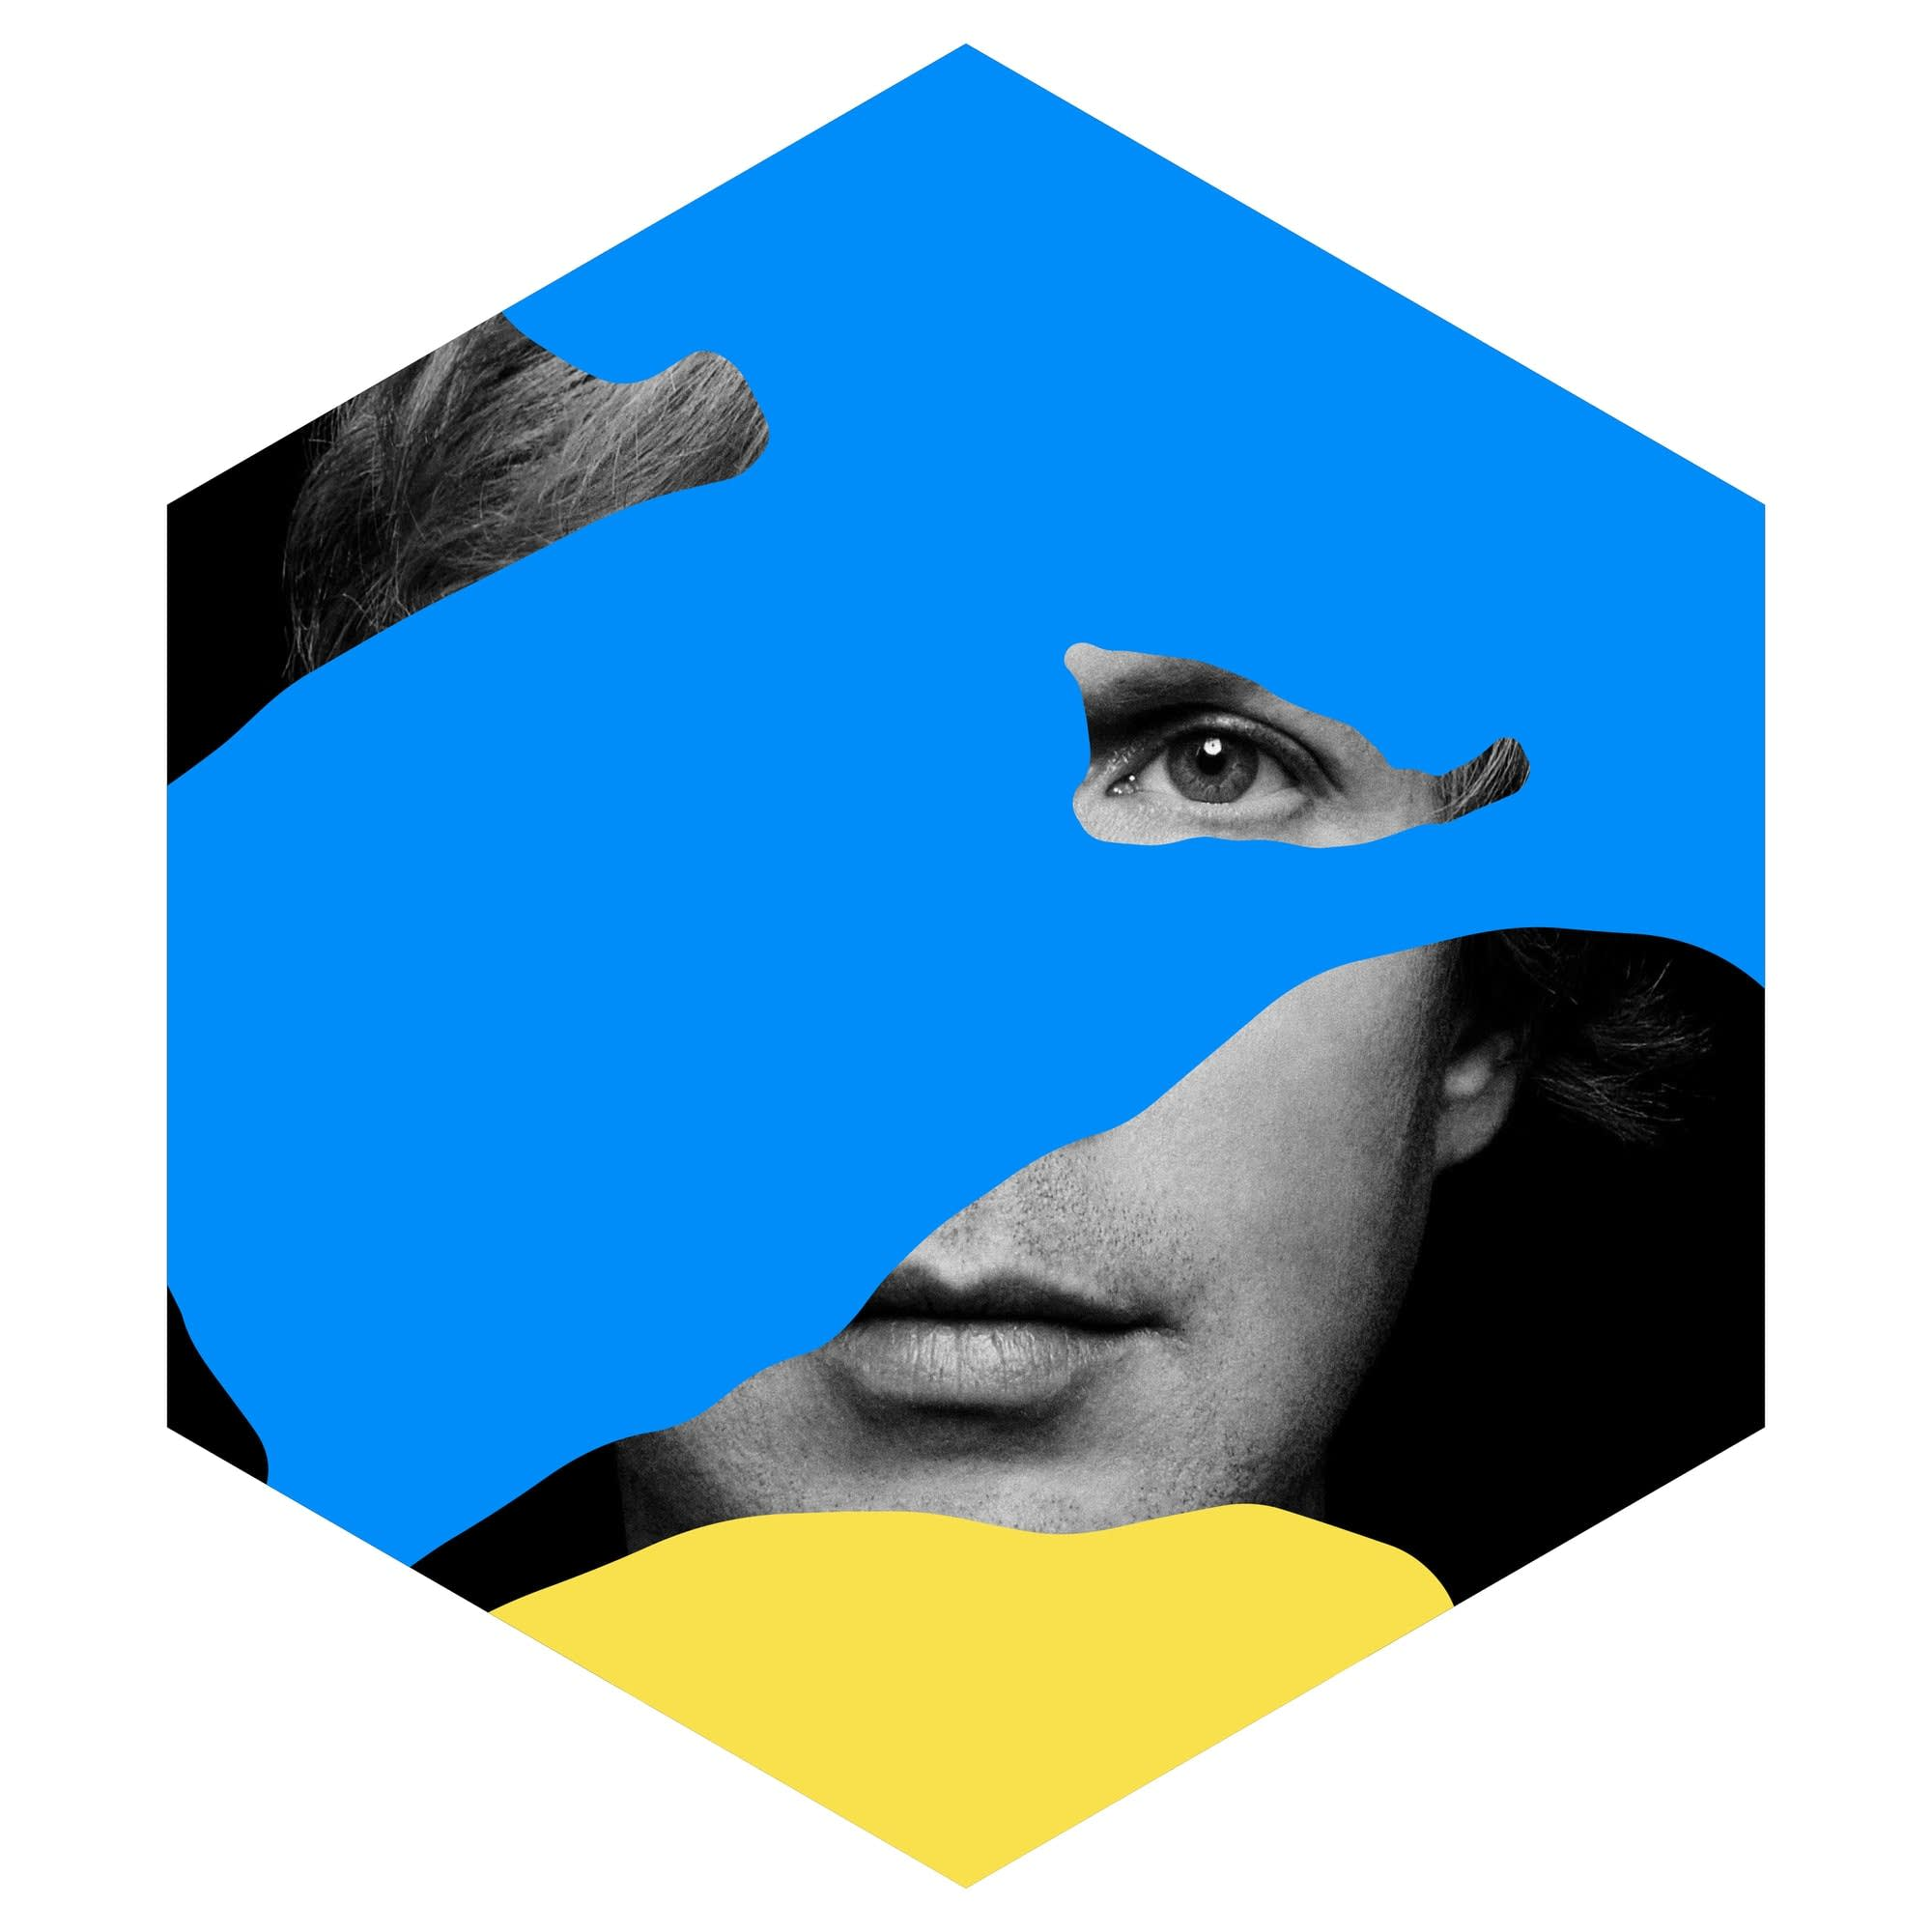 Beck, 'Colors'